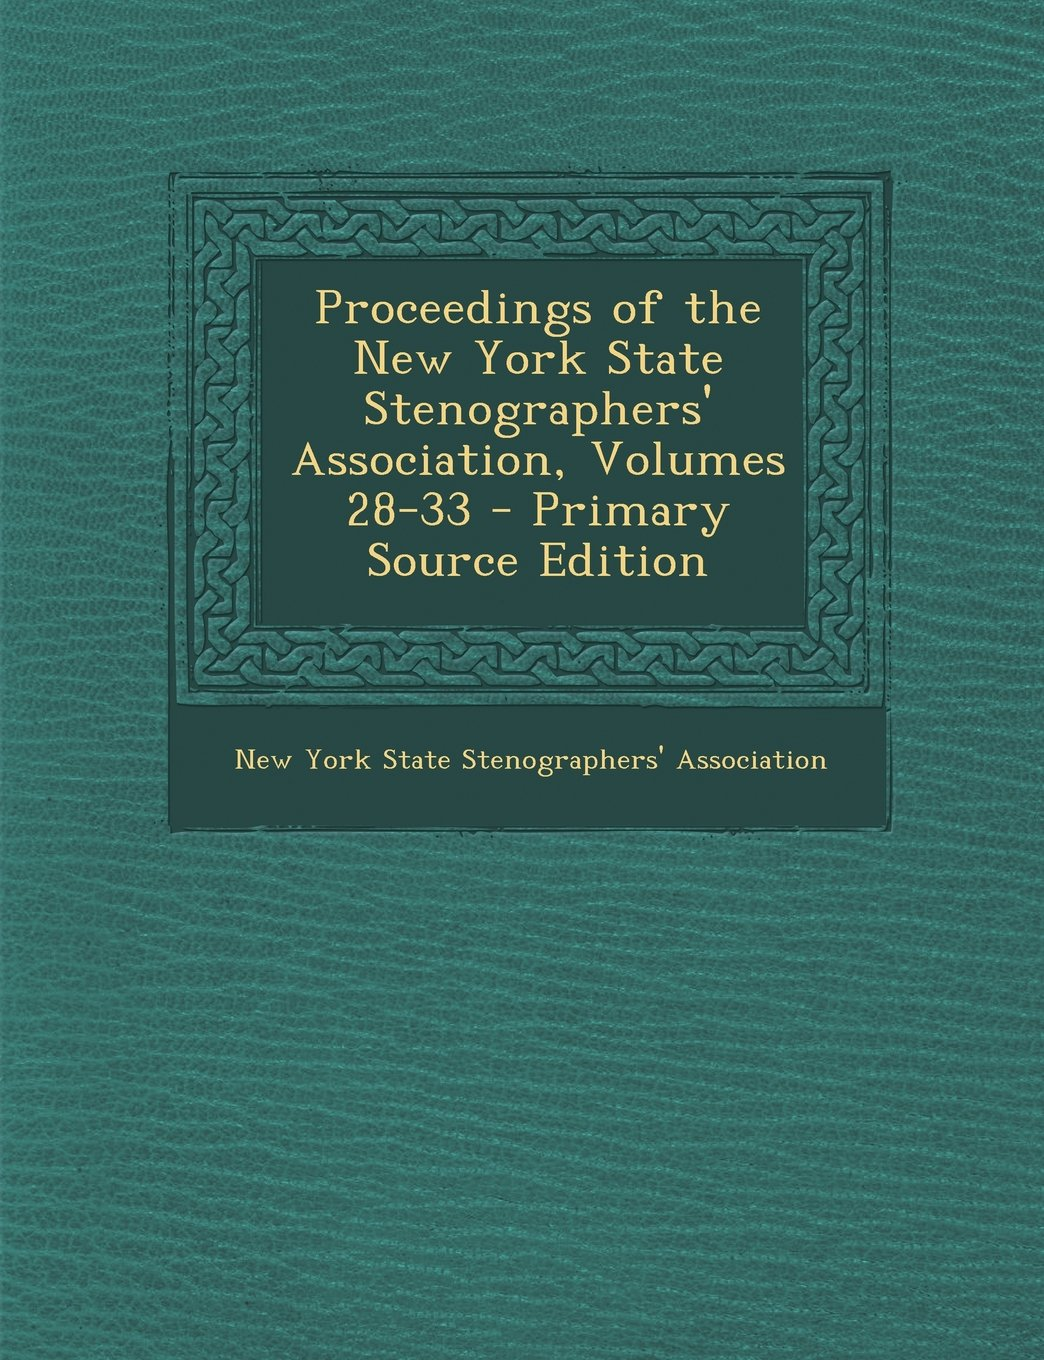 Proceedings of the New York State Stenographers' Association, Volumes 28-33 - Primary Source Edition pdf epub